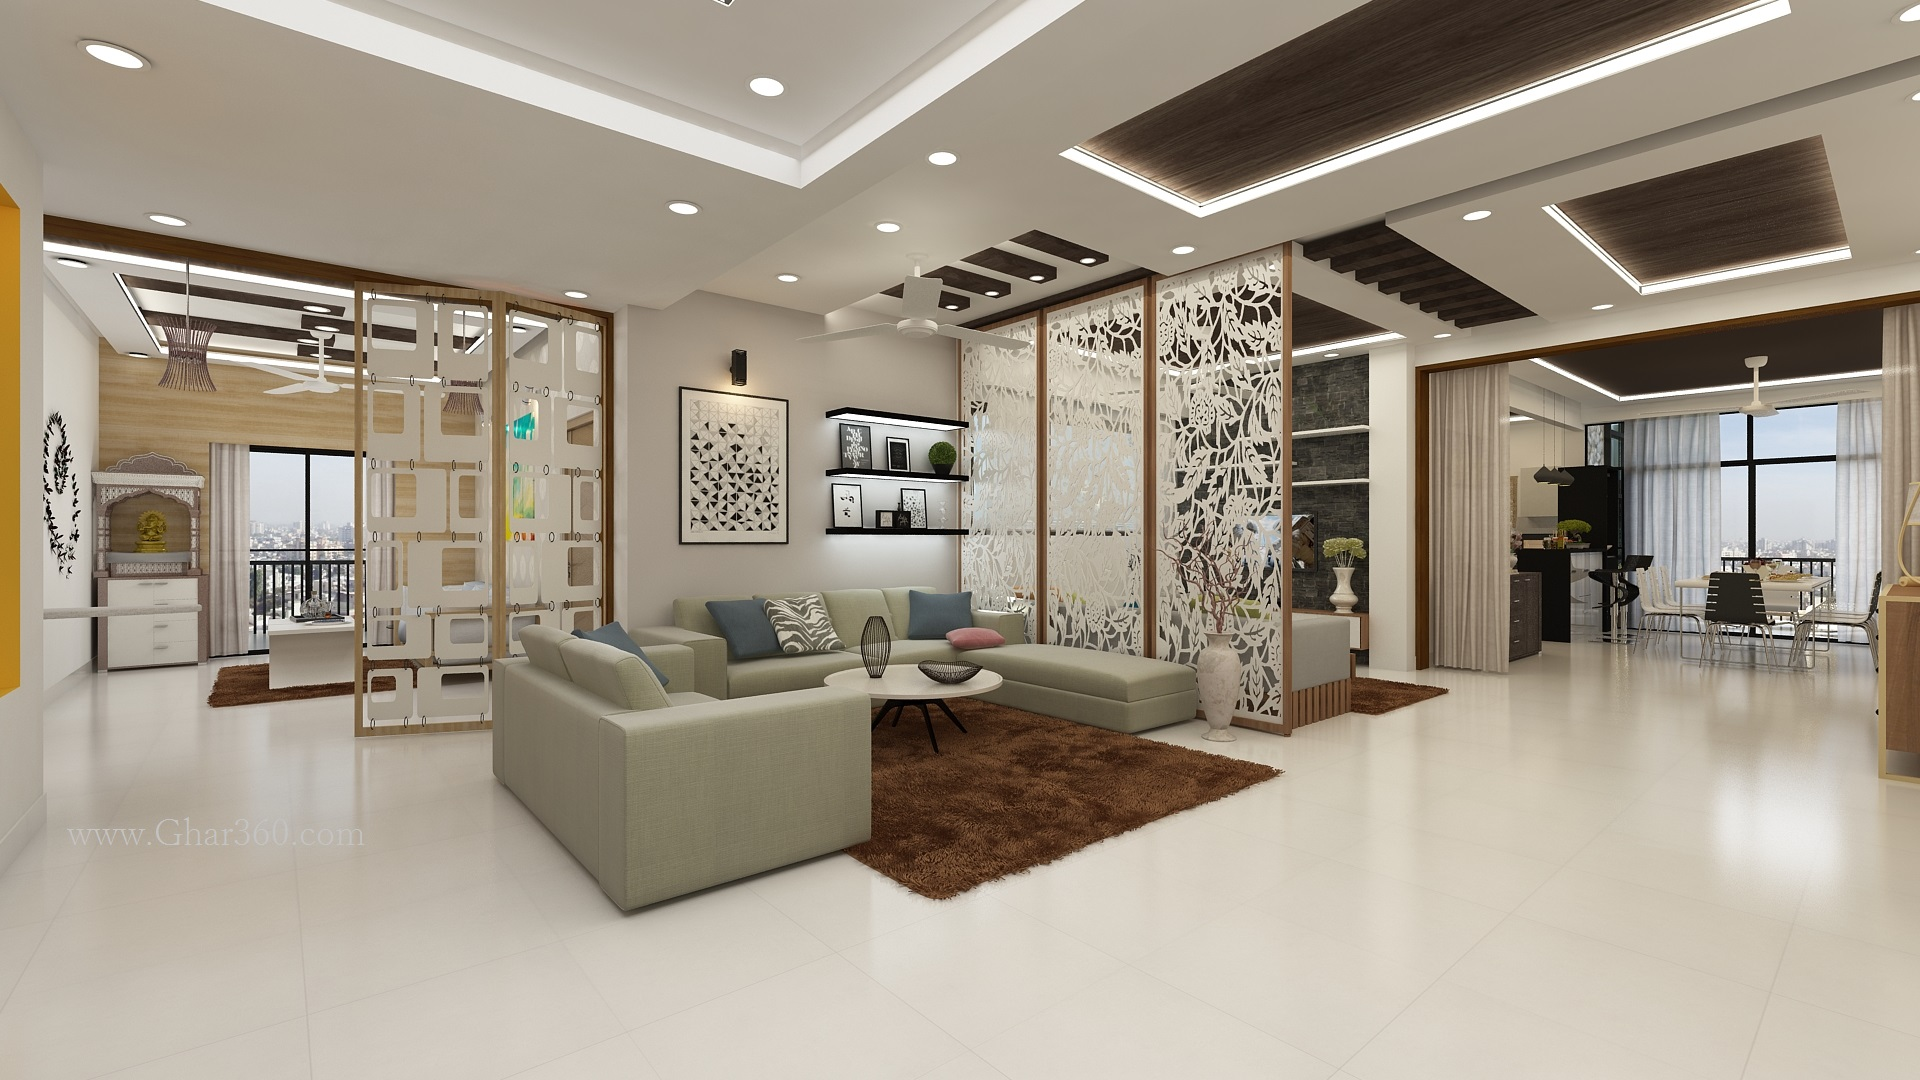 Luxury interior design by ghar360 best interior design for Aslam architects interior designs bangalore